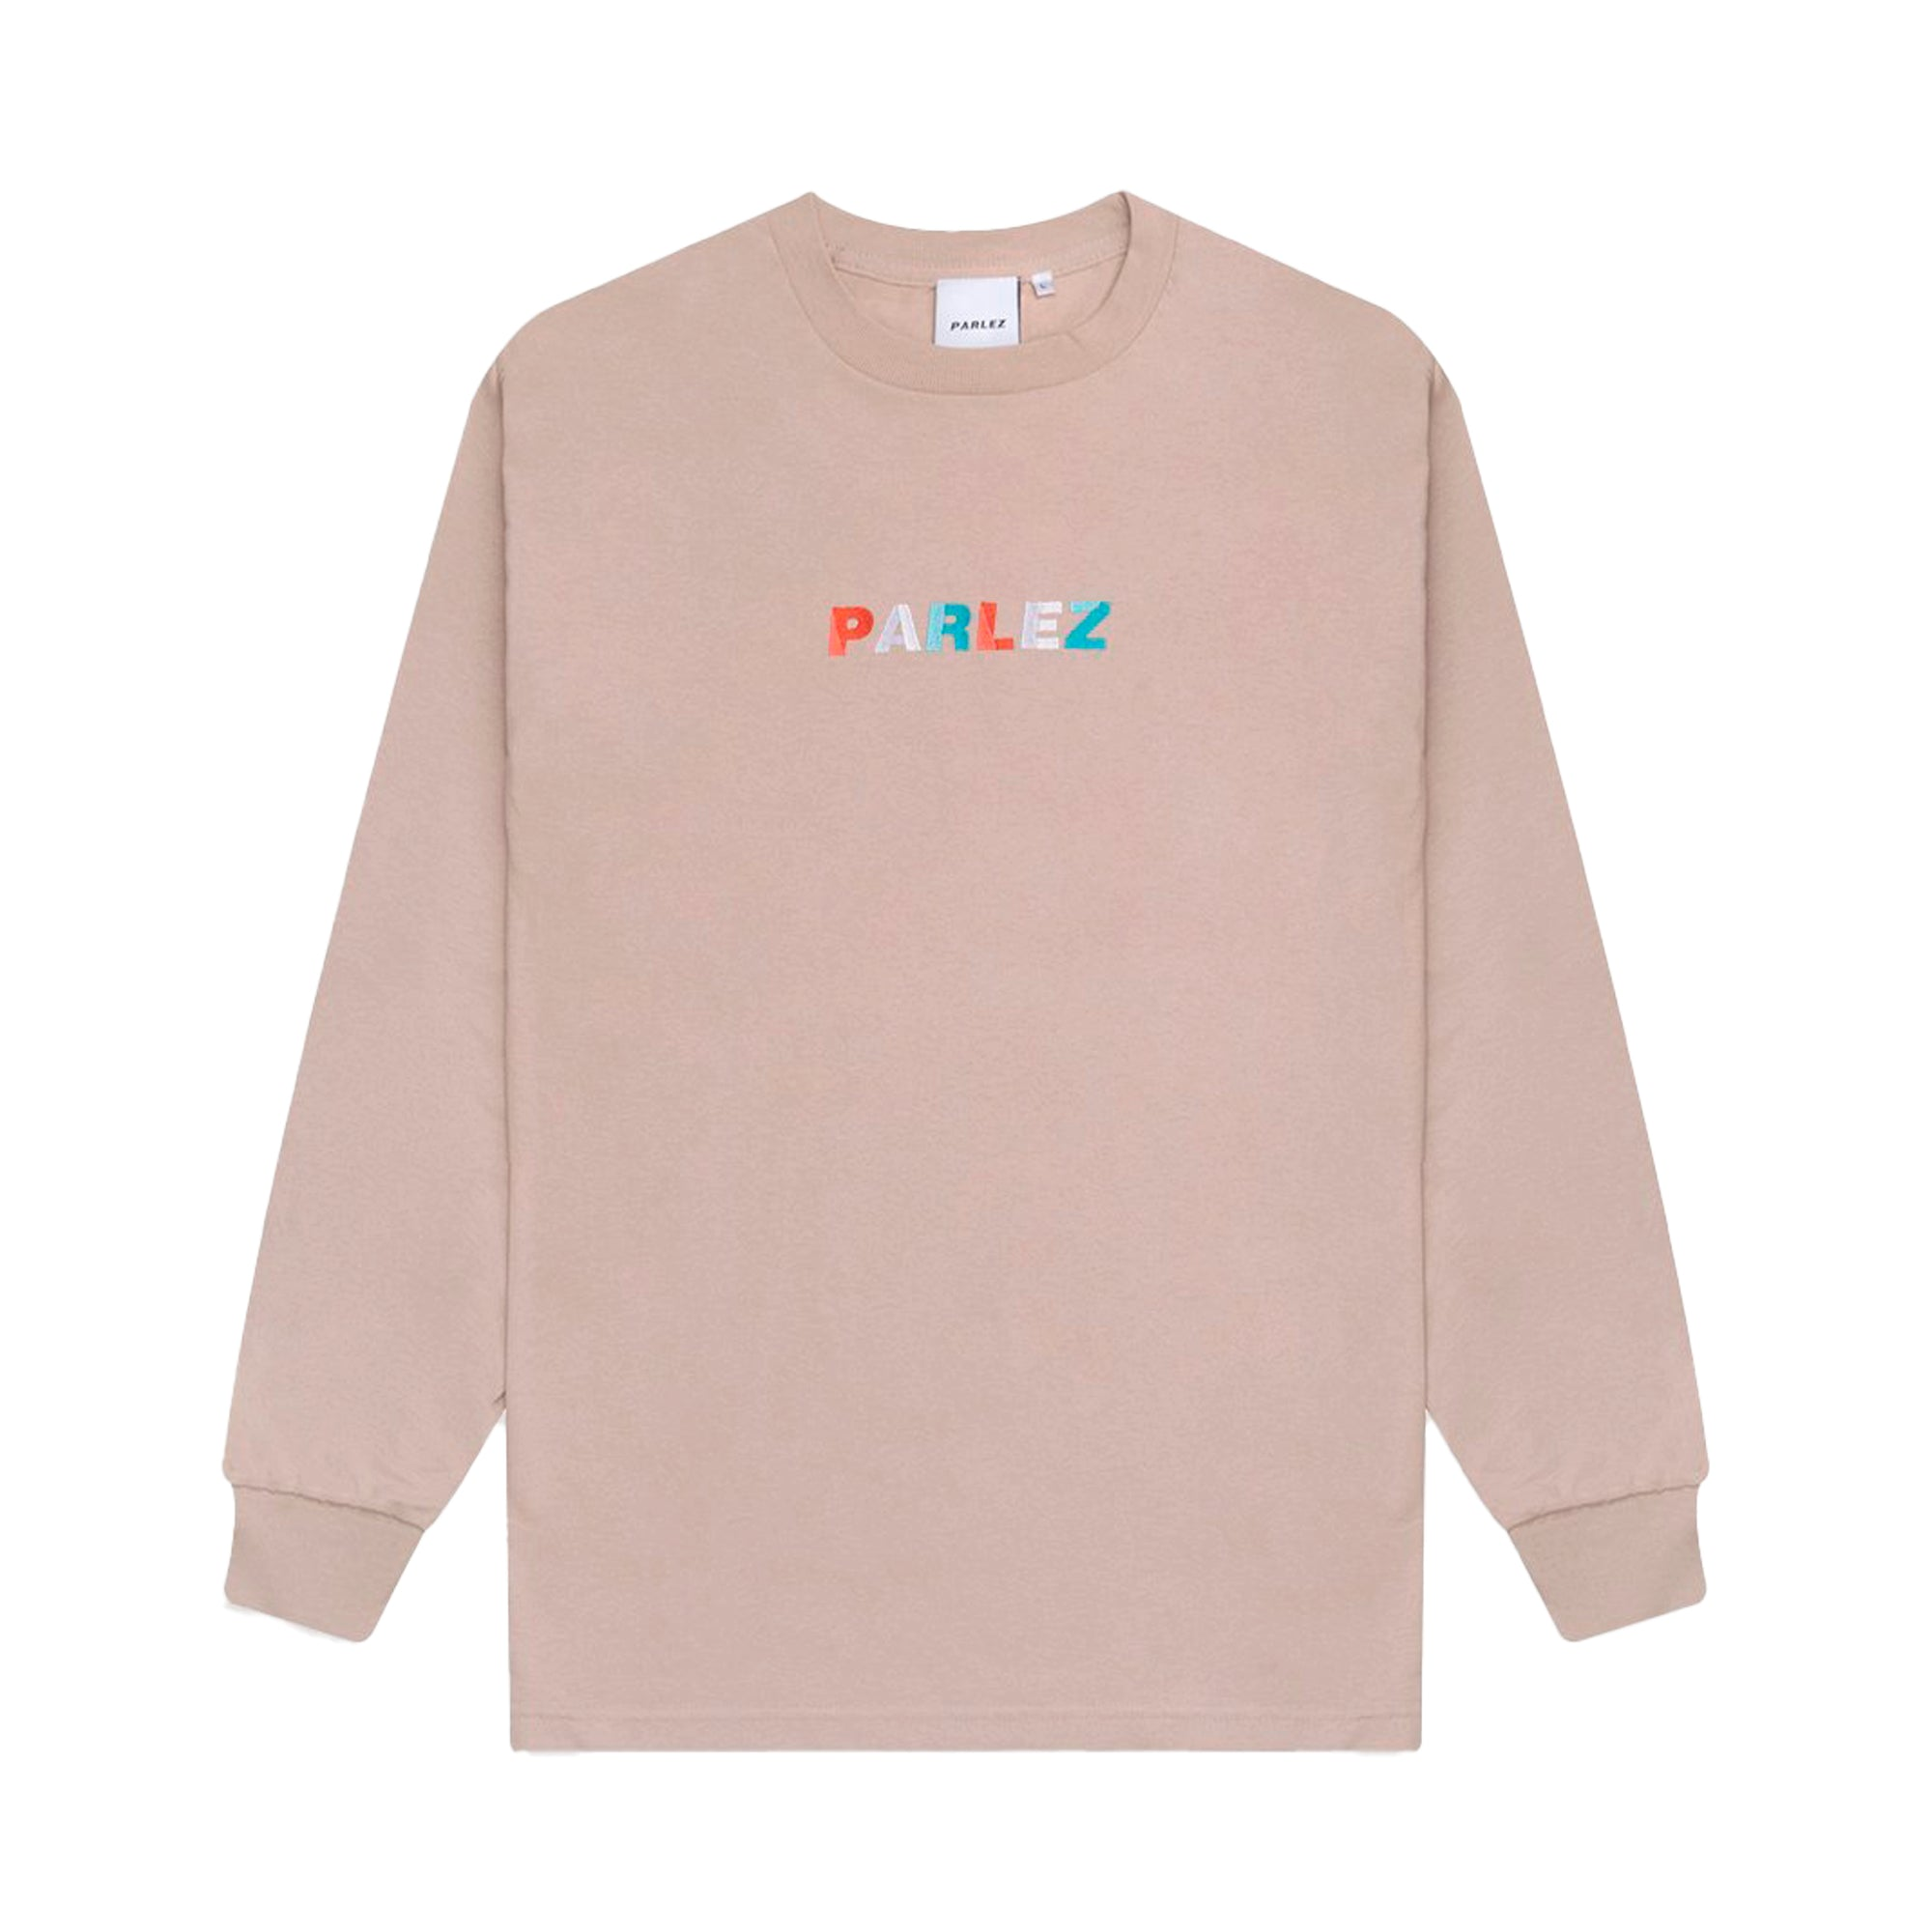 Parlez Faded L/S T-Shirt: Sand - The Union Project